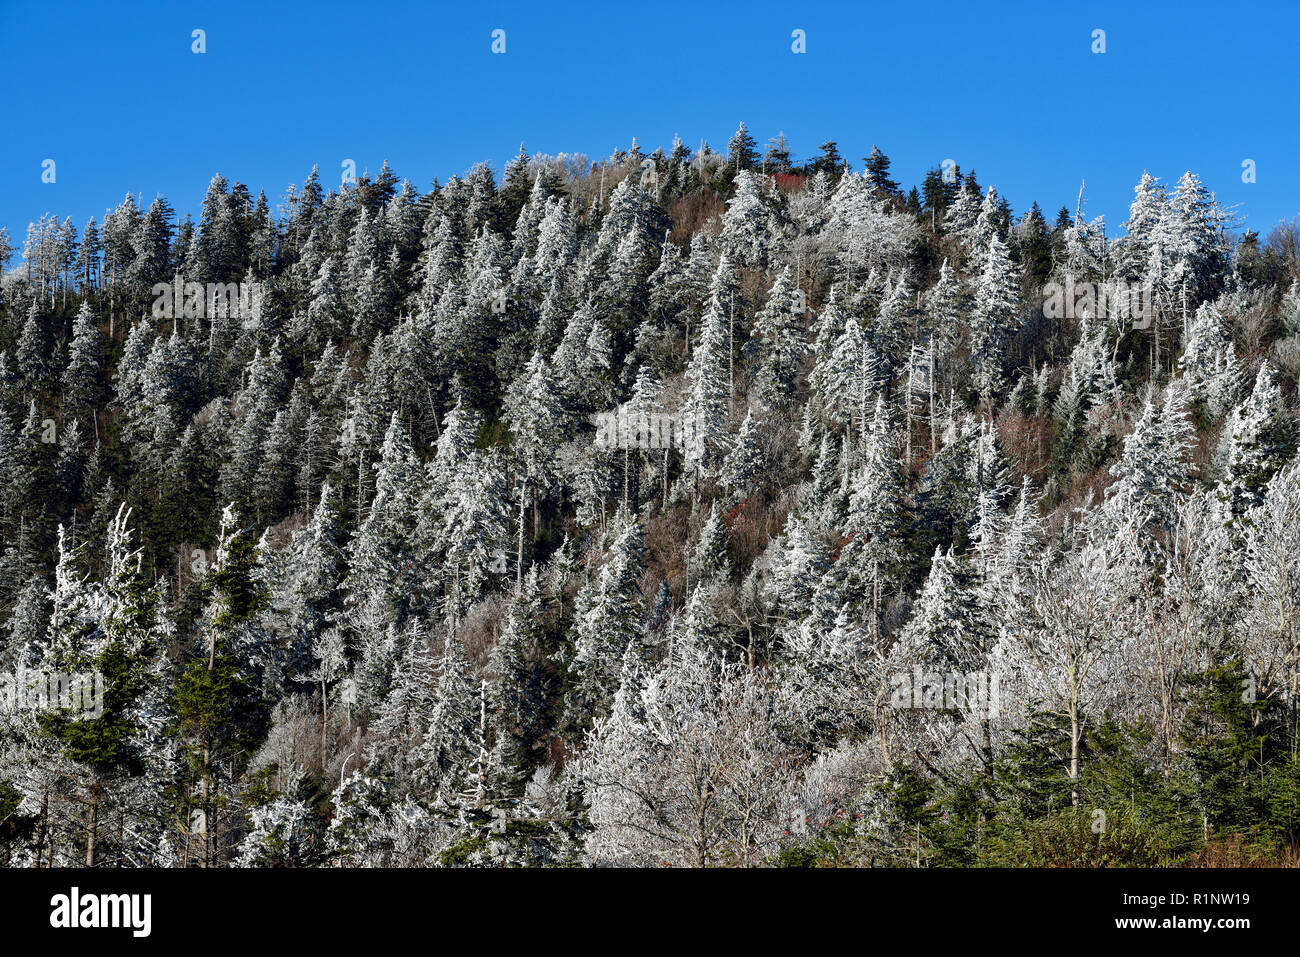 Frosted trees on the slopes near Clingman's Dome, Great Smoky Mountains National Park, Tennessee, USA - Stock Image